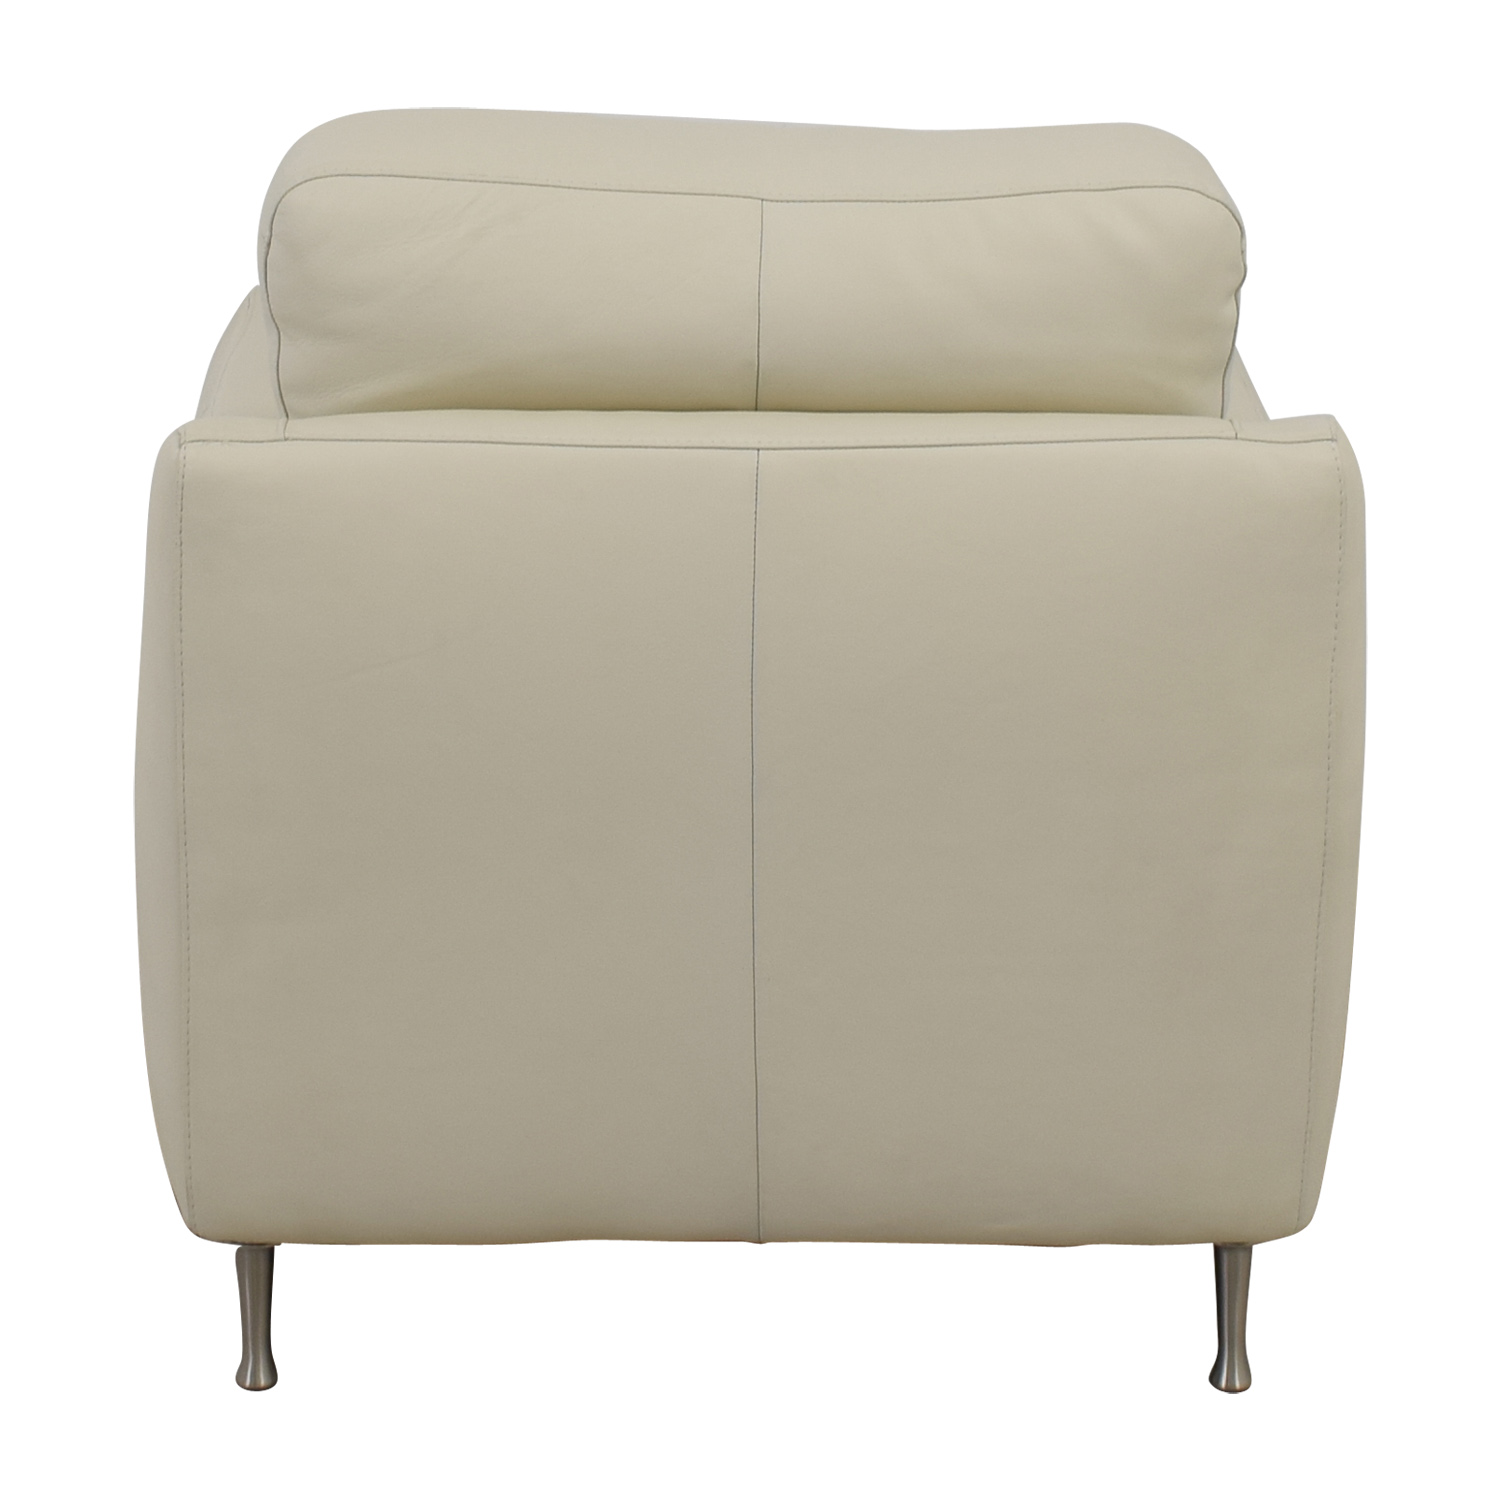 buy Natuzzi White Leather Chair & Ottoman Natuzzi